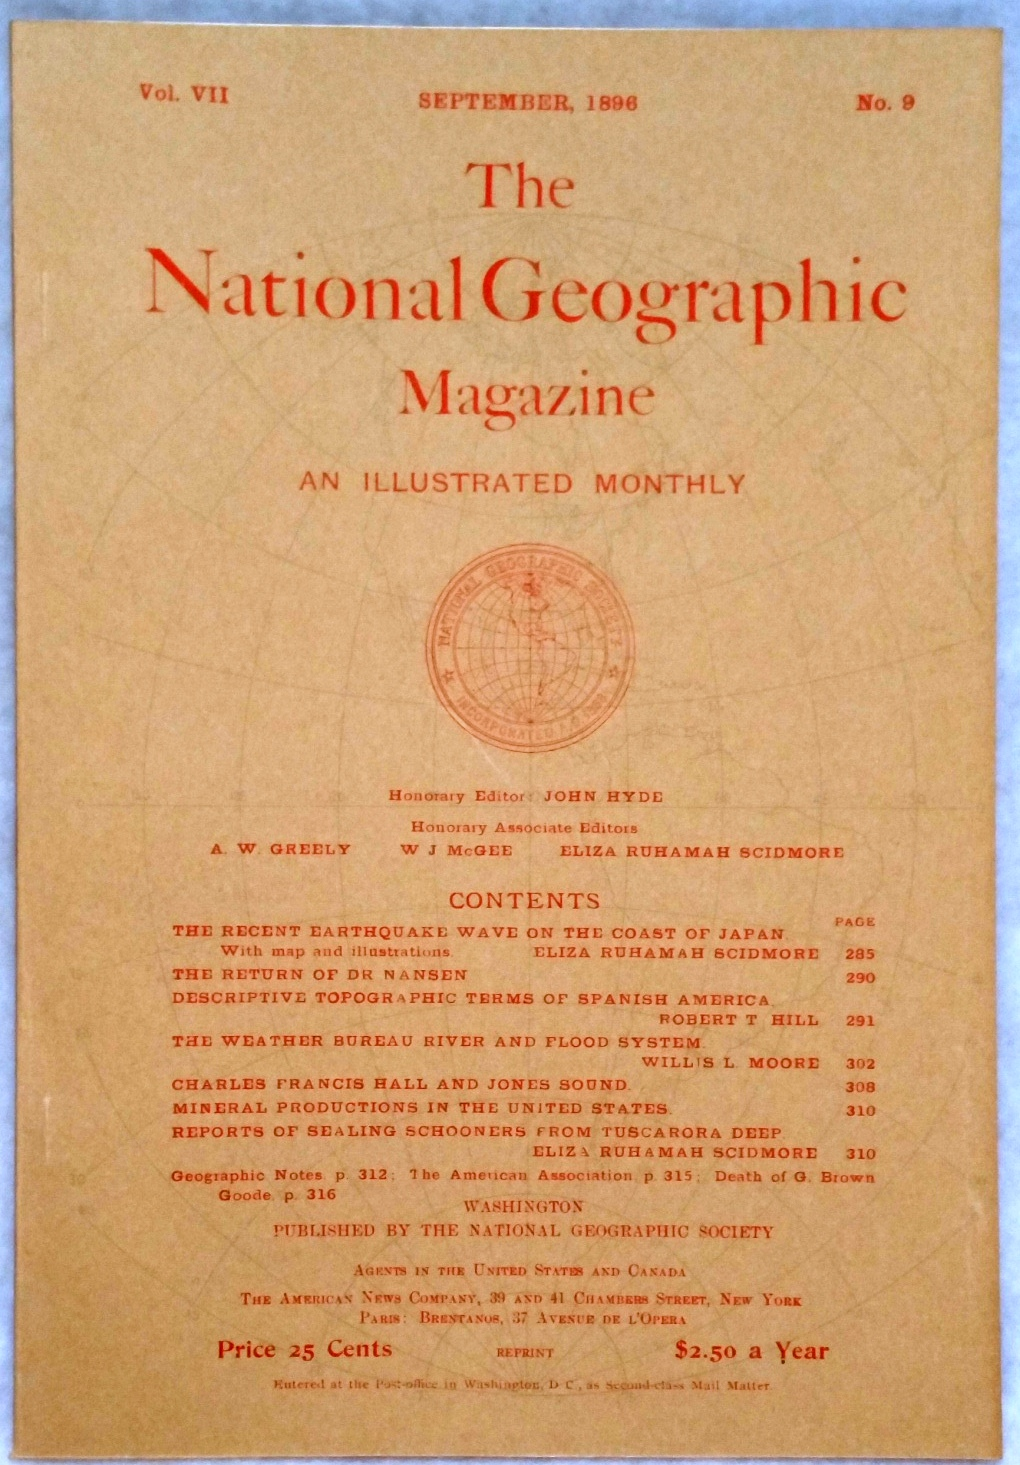 Image for The National Geographic Magazine, Vol VII. No. 9, September, 1896